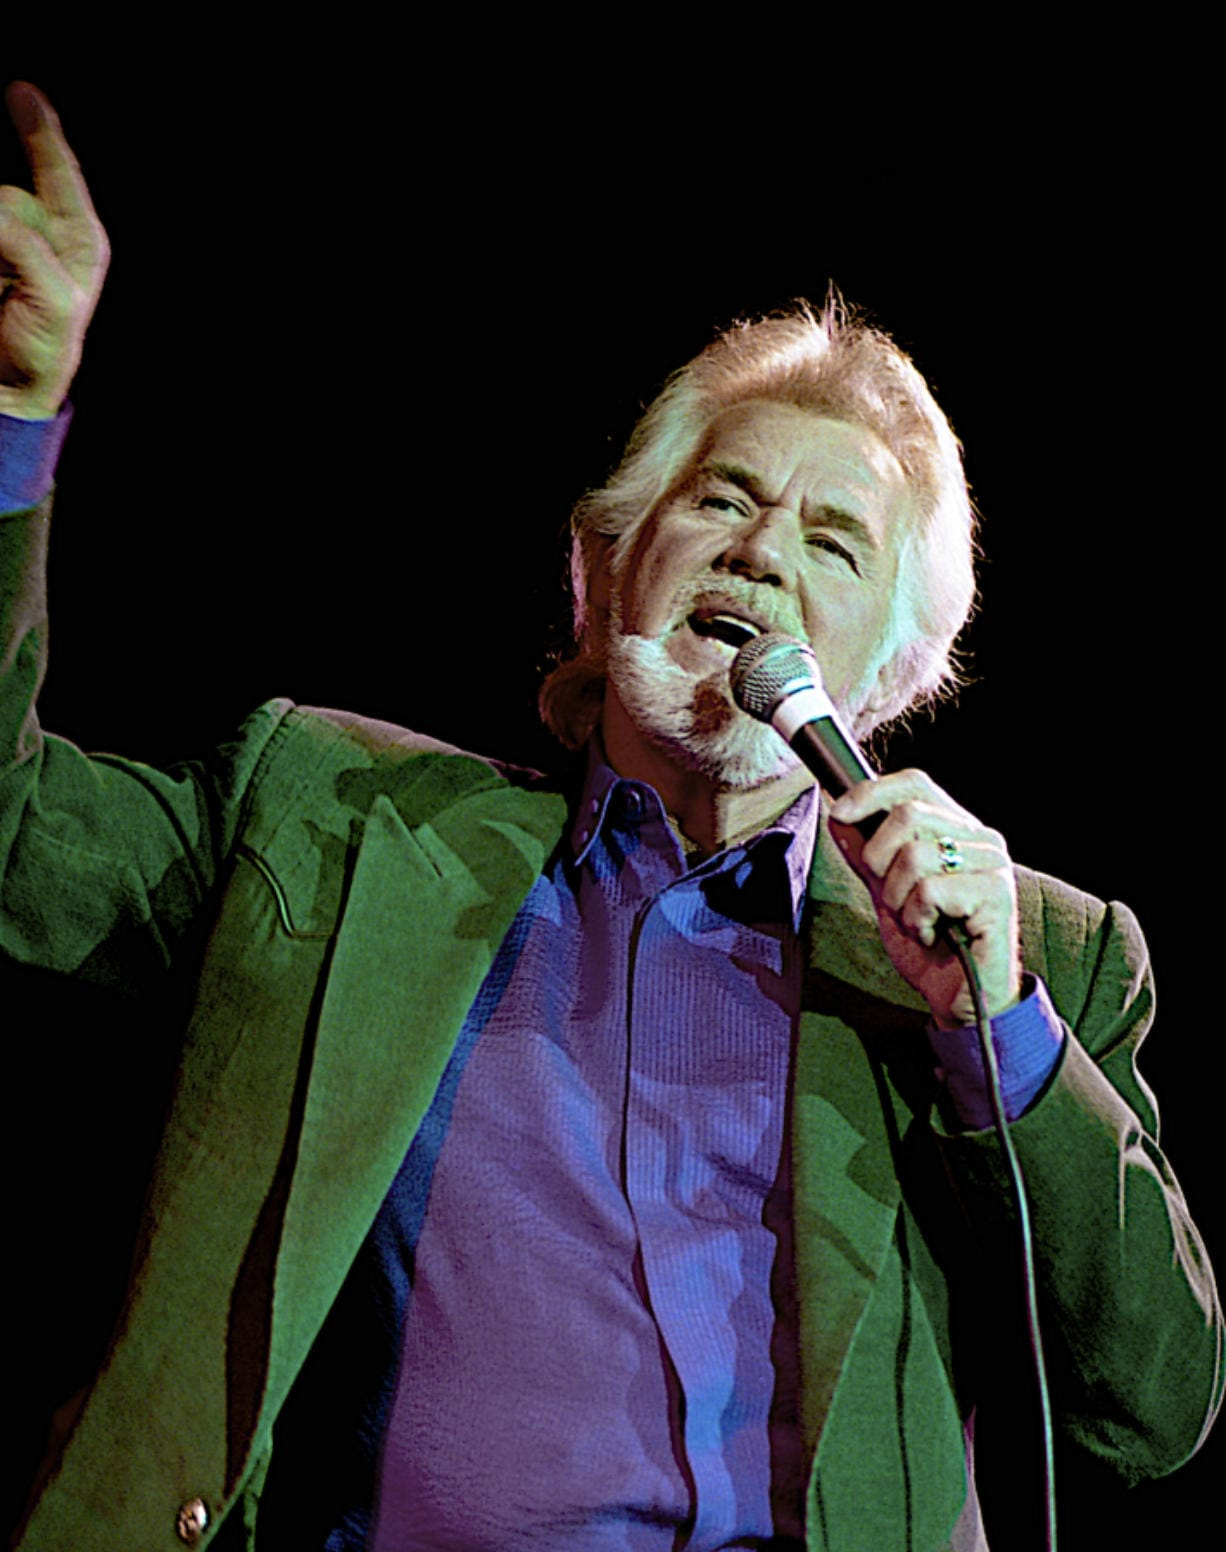 Kenny Rogers performs June 19, 2015, during the 50th anniversary show from the studios of Voice of America in Washington, D.C.